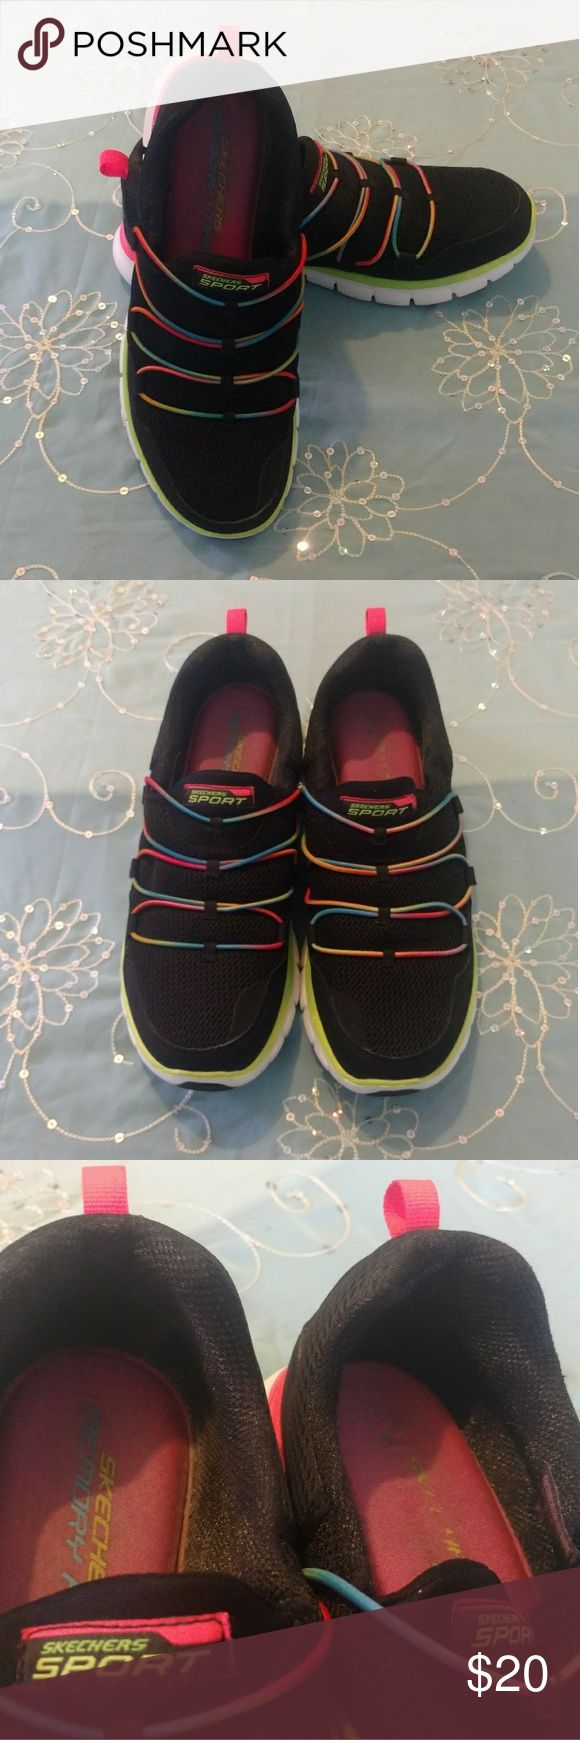 Skechers Sport Loving Life Memory Foam Sneakers Preloved Skechers Sport Loving Life Memory Foam Fashion Sneakers in black and multi. Size 9. Super comfortable, slip on sneakers. There is some fading of the inside logo, and discoloration as shown. Skechers Shoes Sneakers